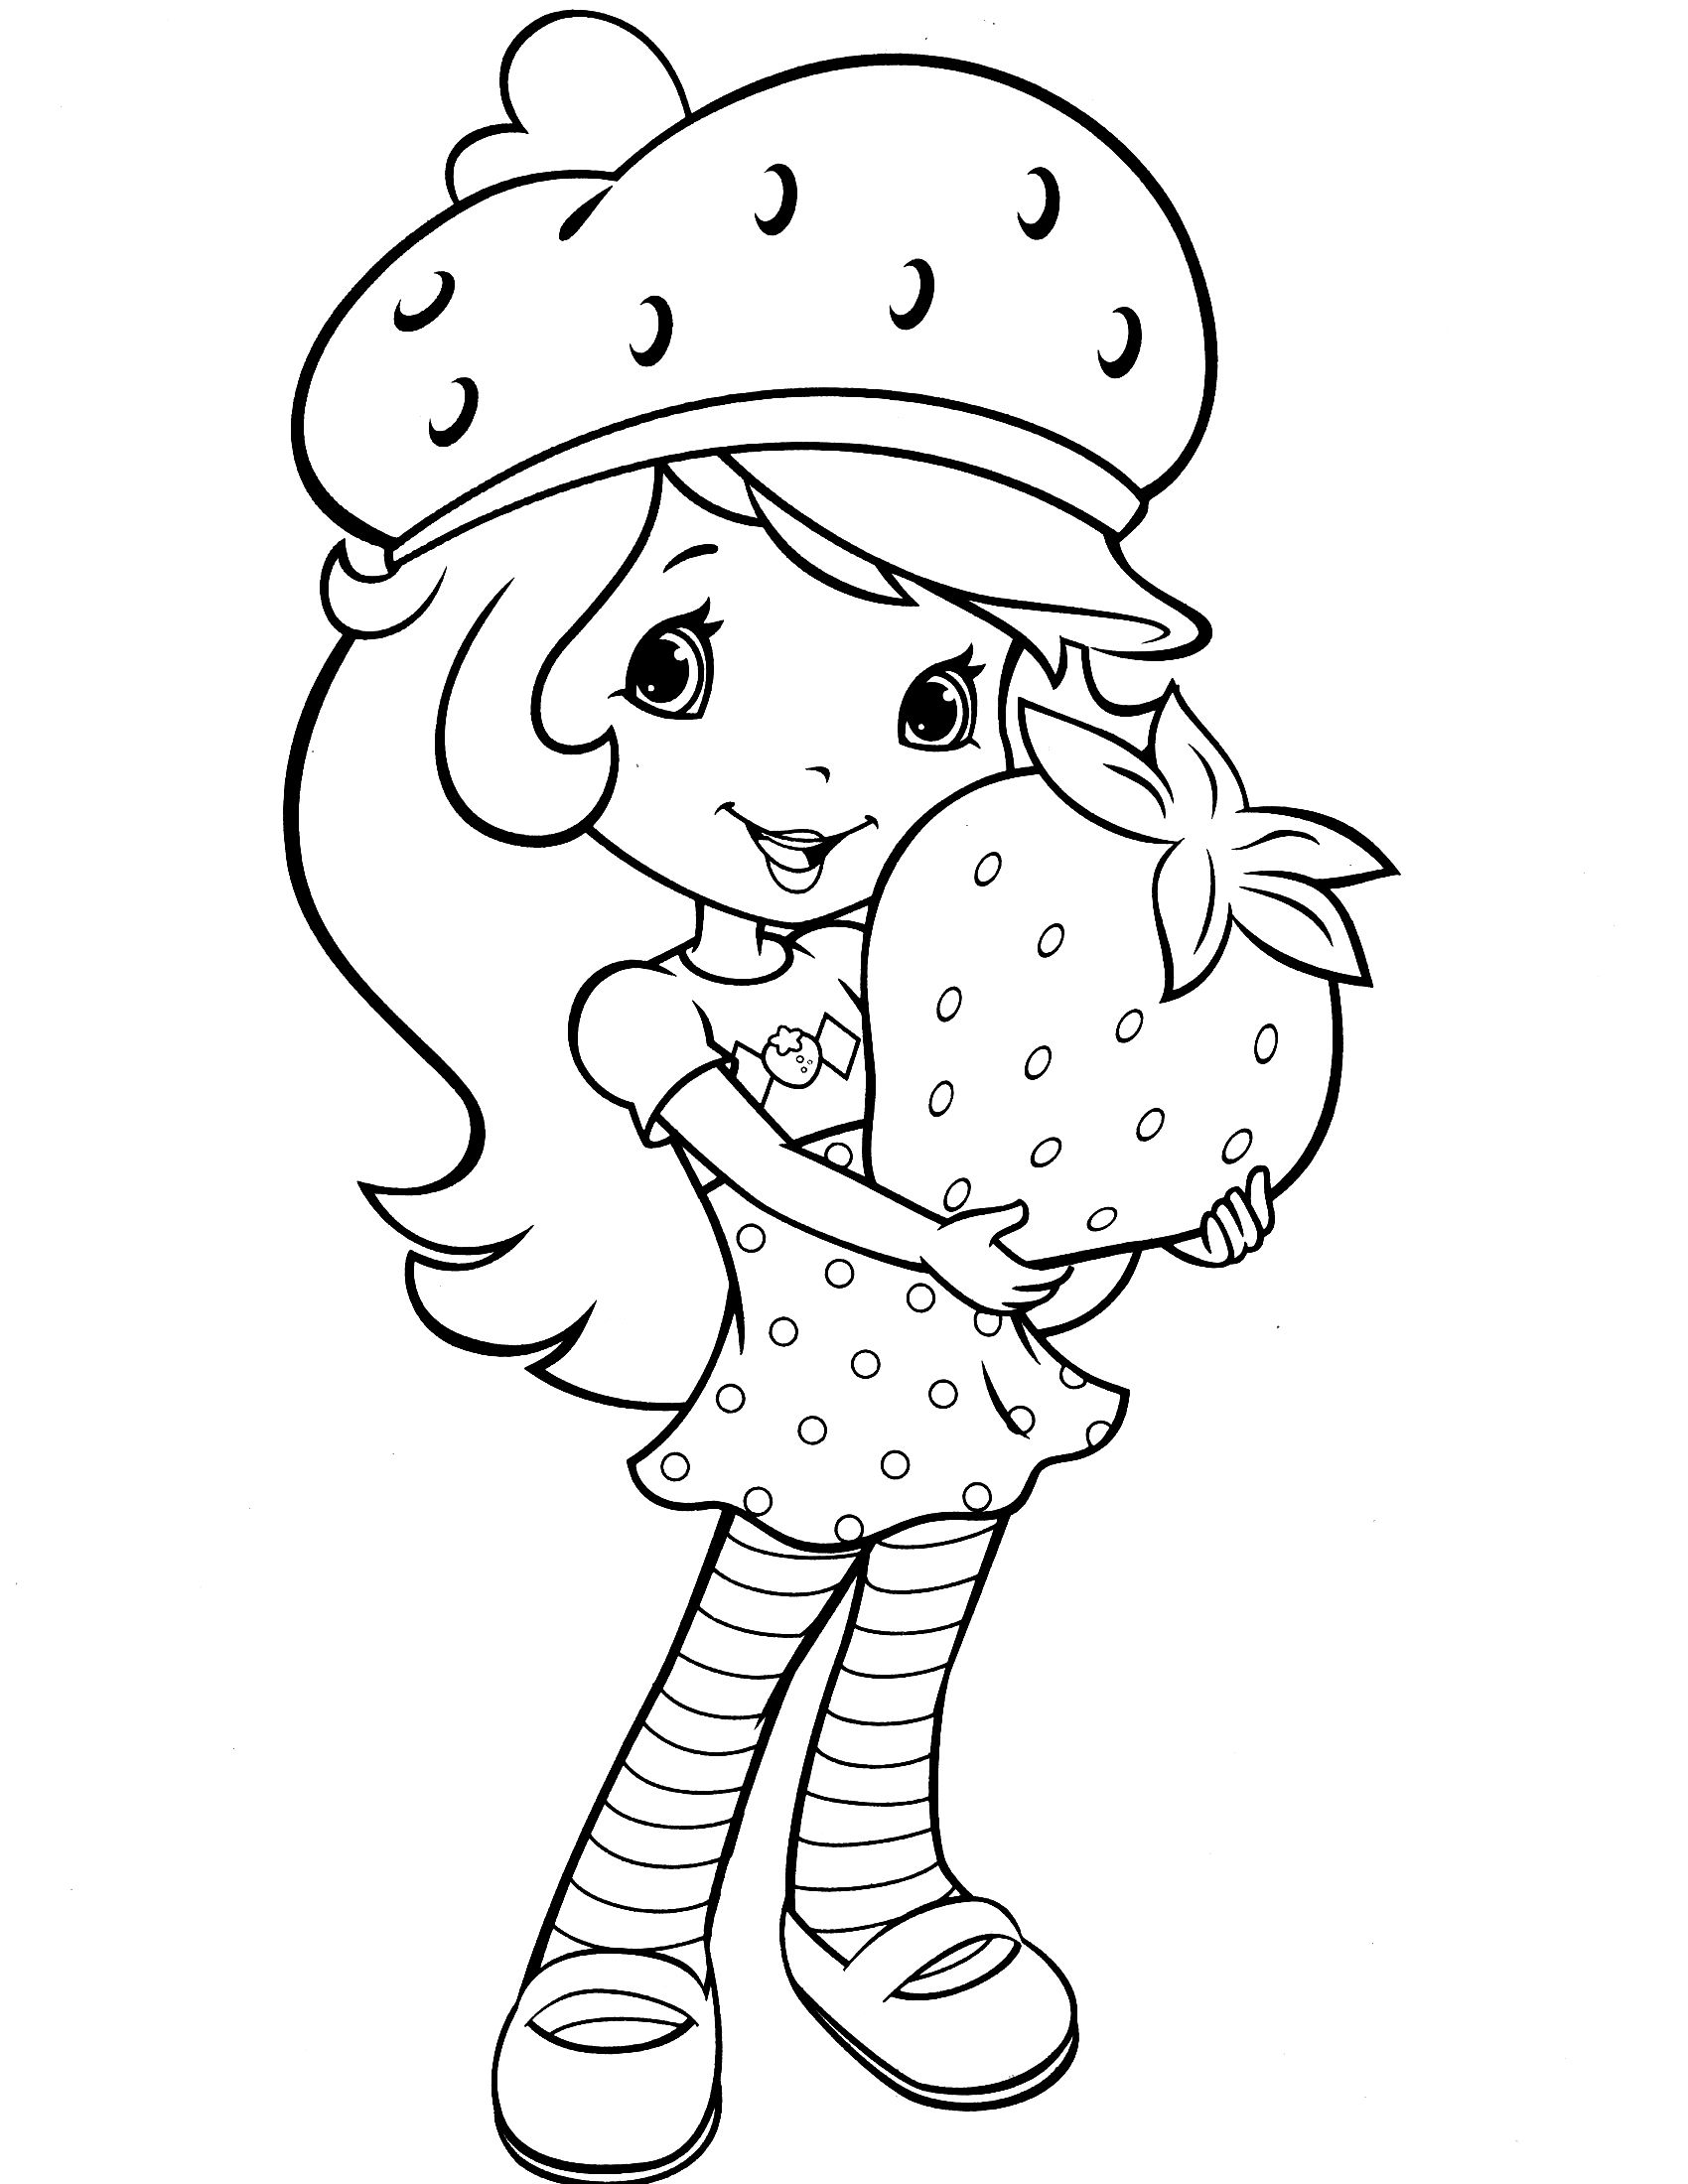 coloring pages of strawberry shortcake and friends strawberry shortcake always helping her friends coloring shortcake friends of and coloring pages strawberry